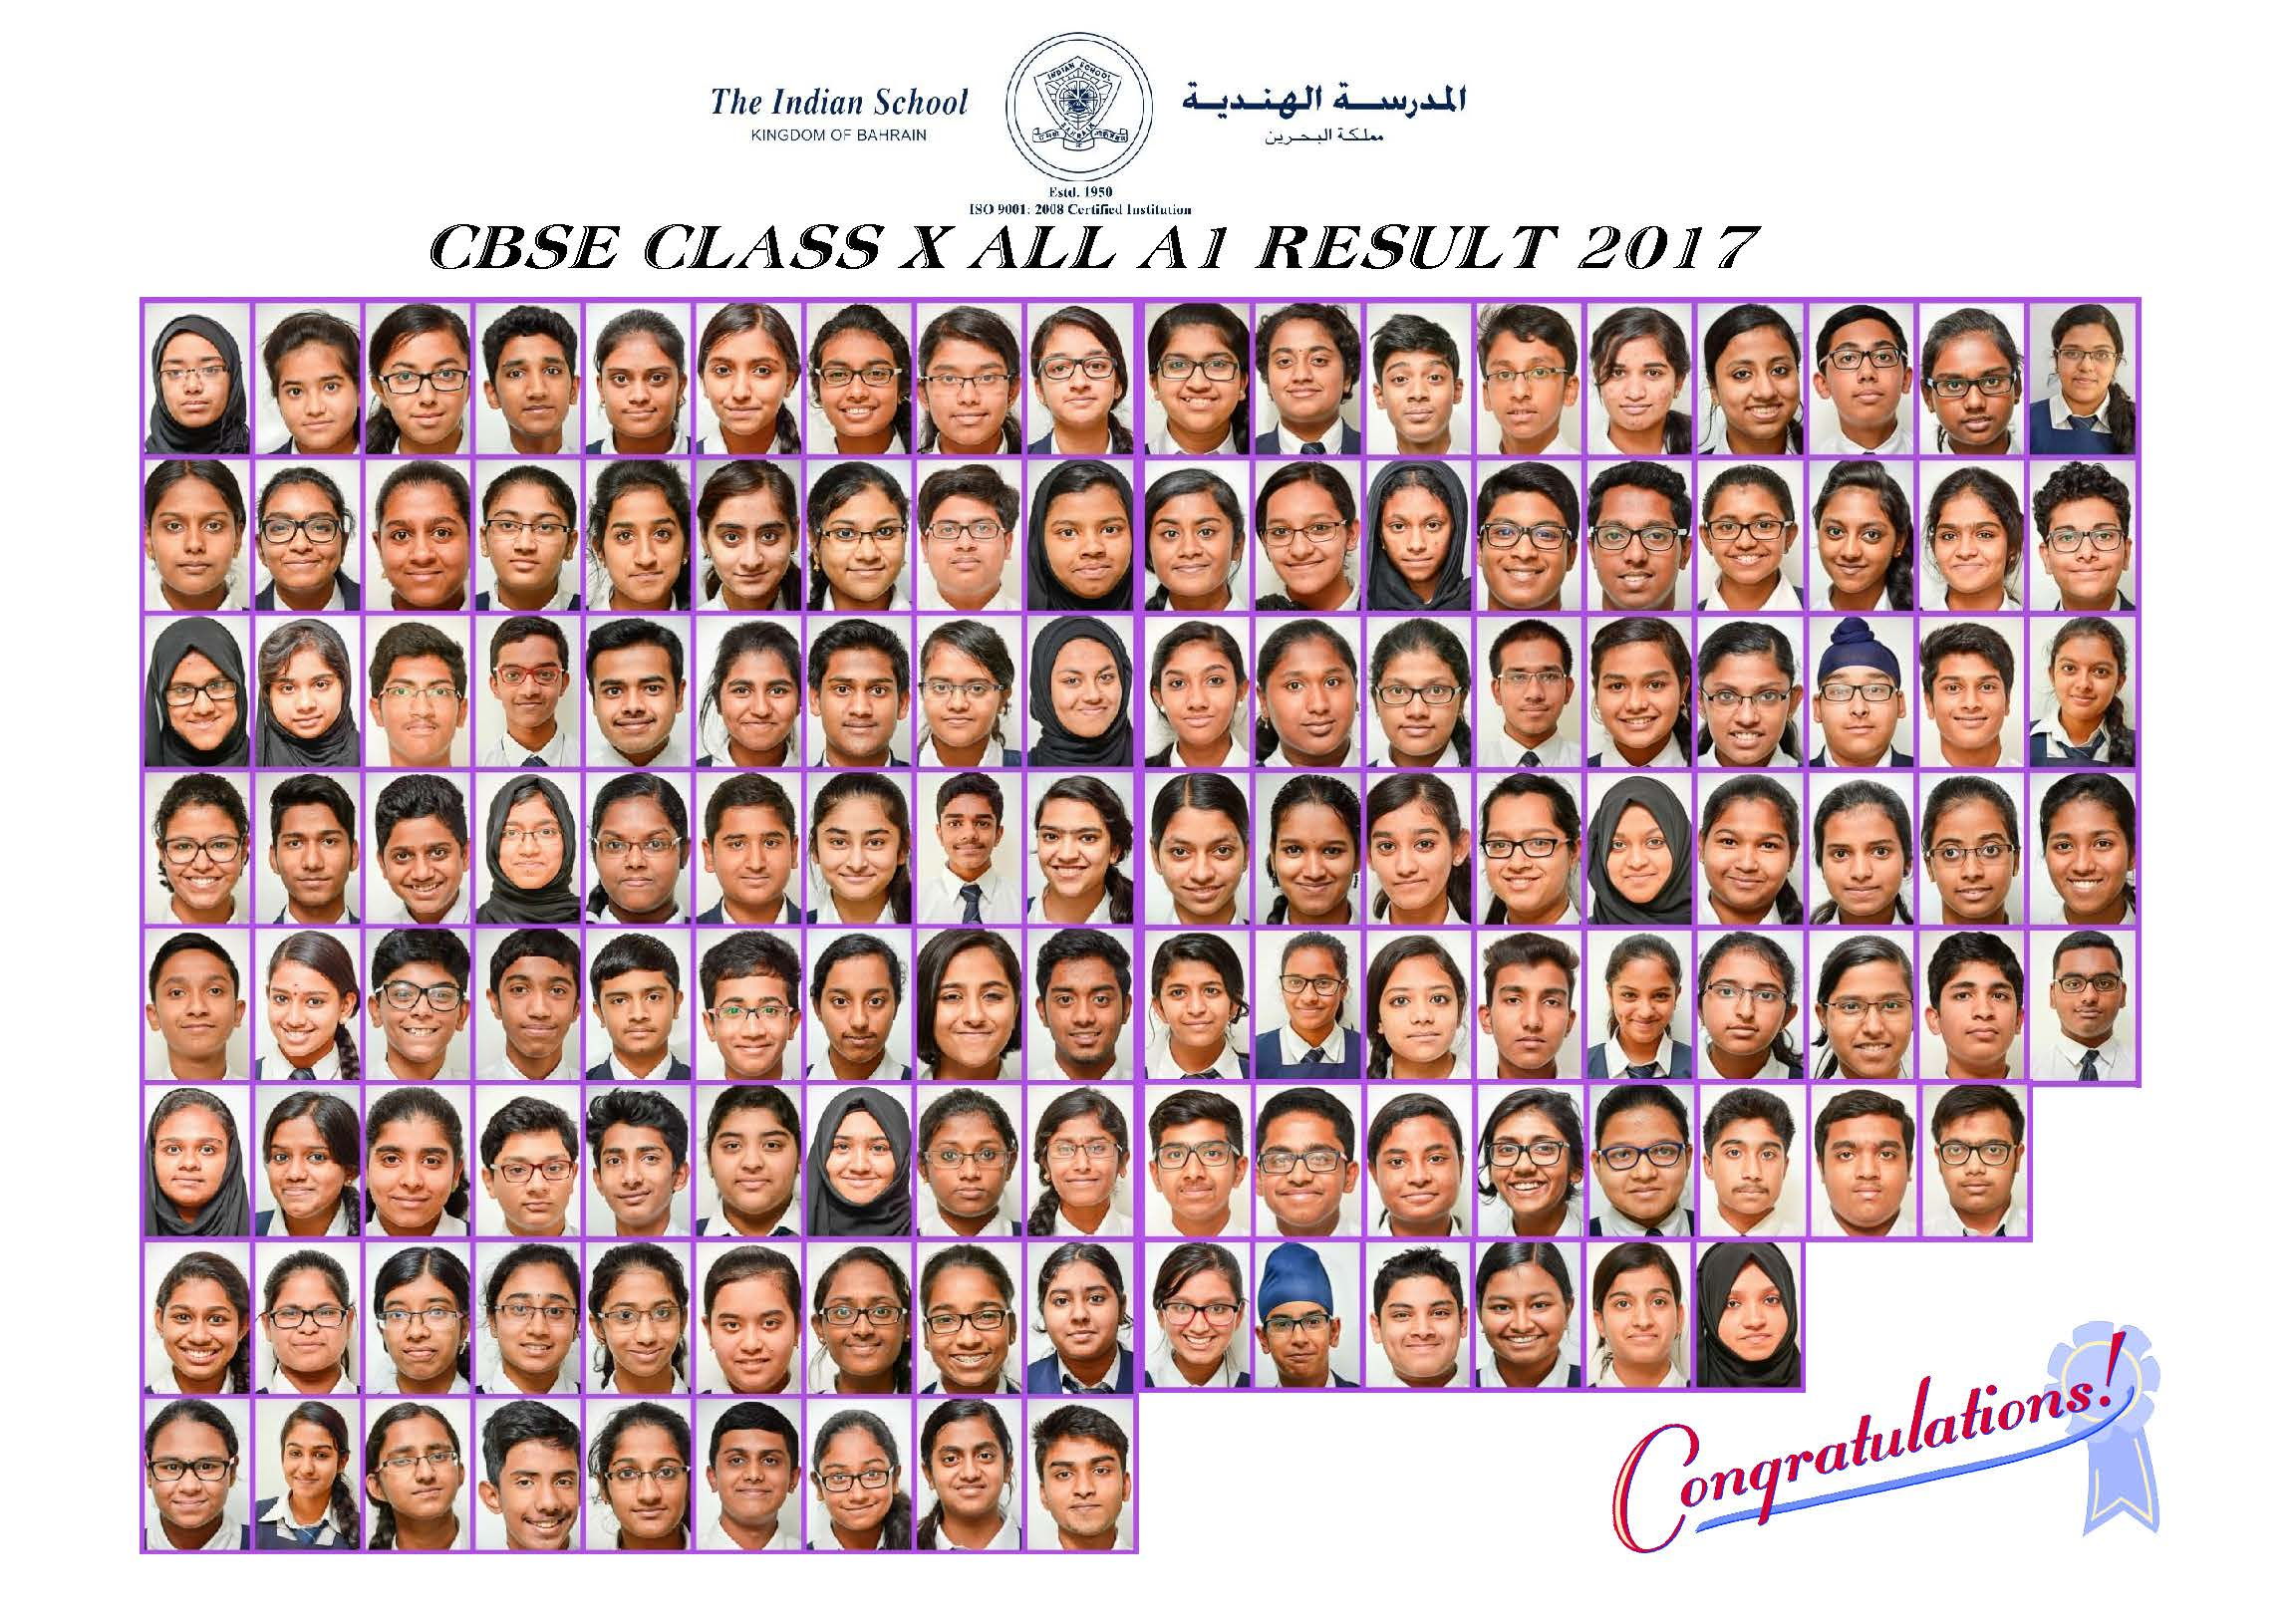 ISB STUDENTS EXCEL IN GRADE X CBSE EXAM - MARCH 2017